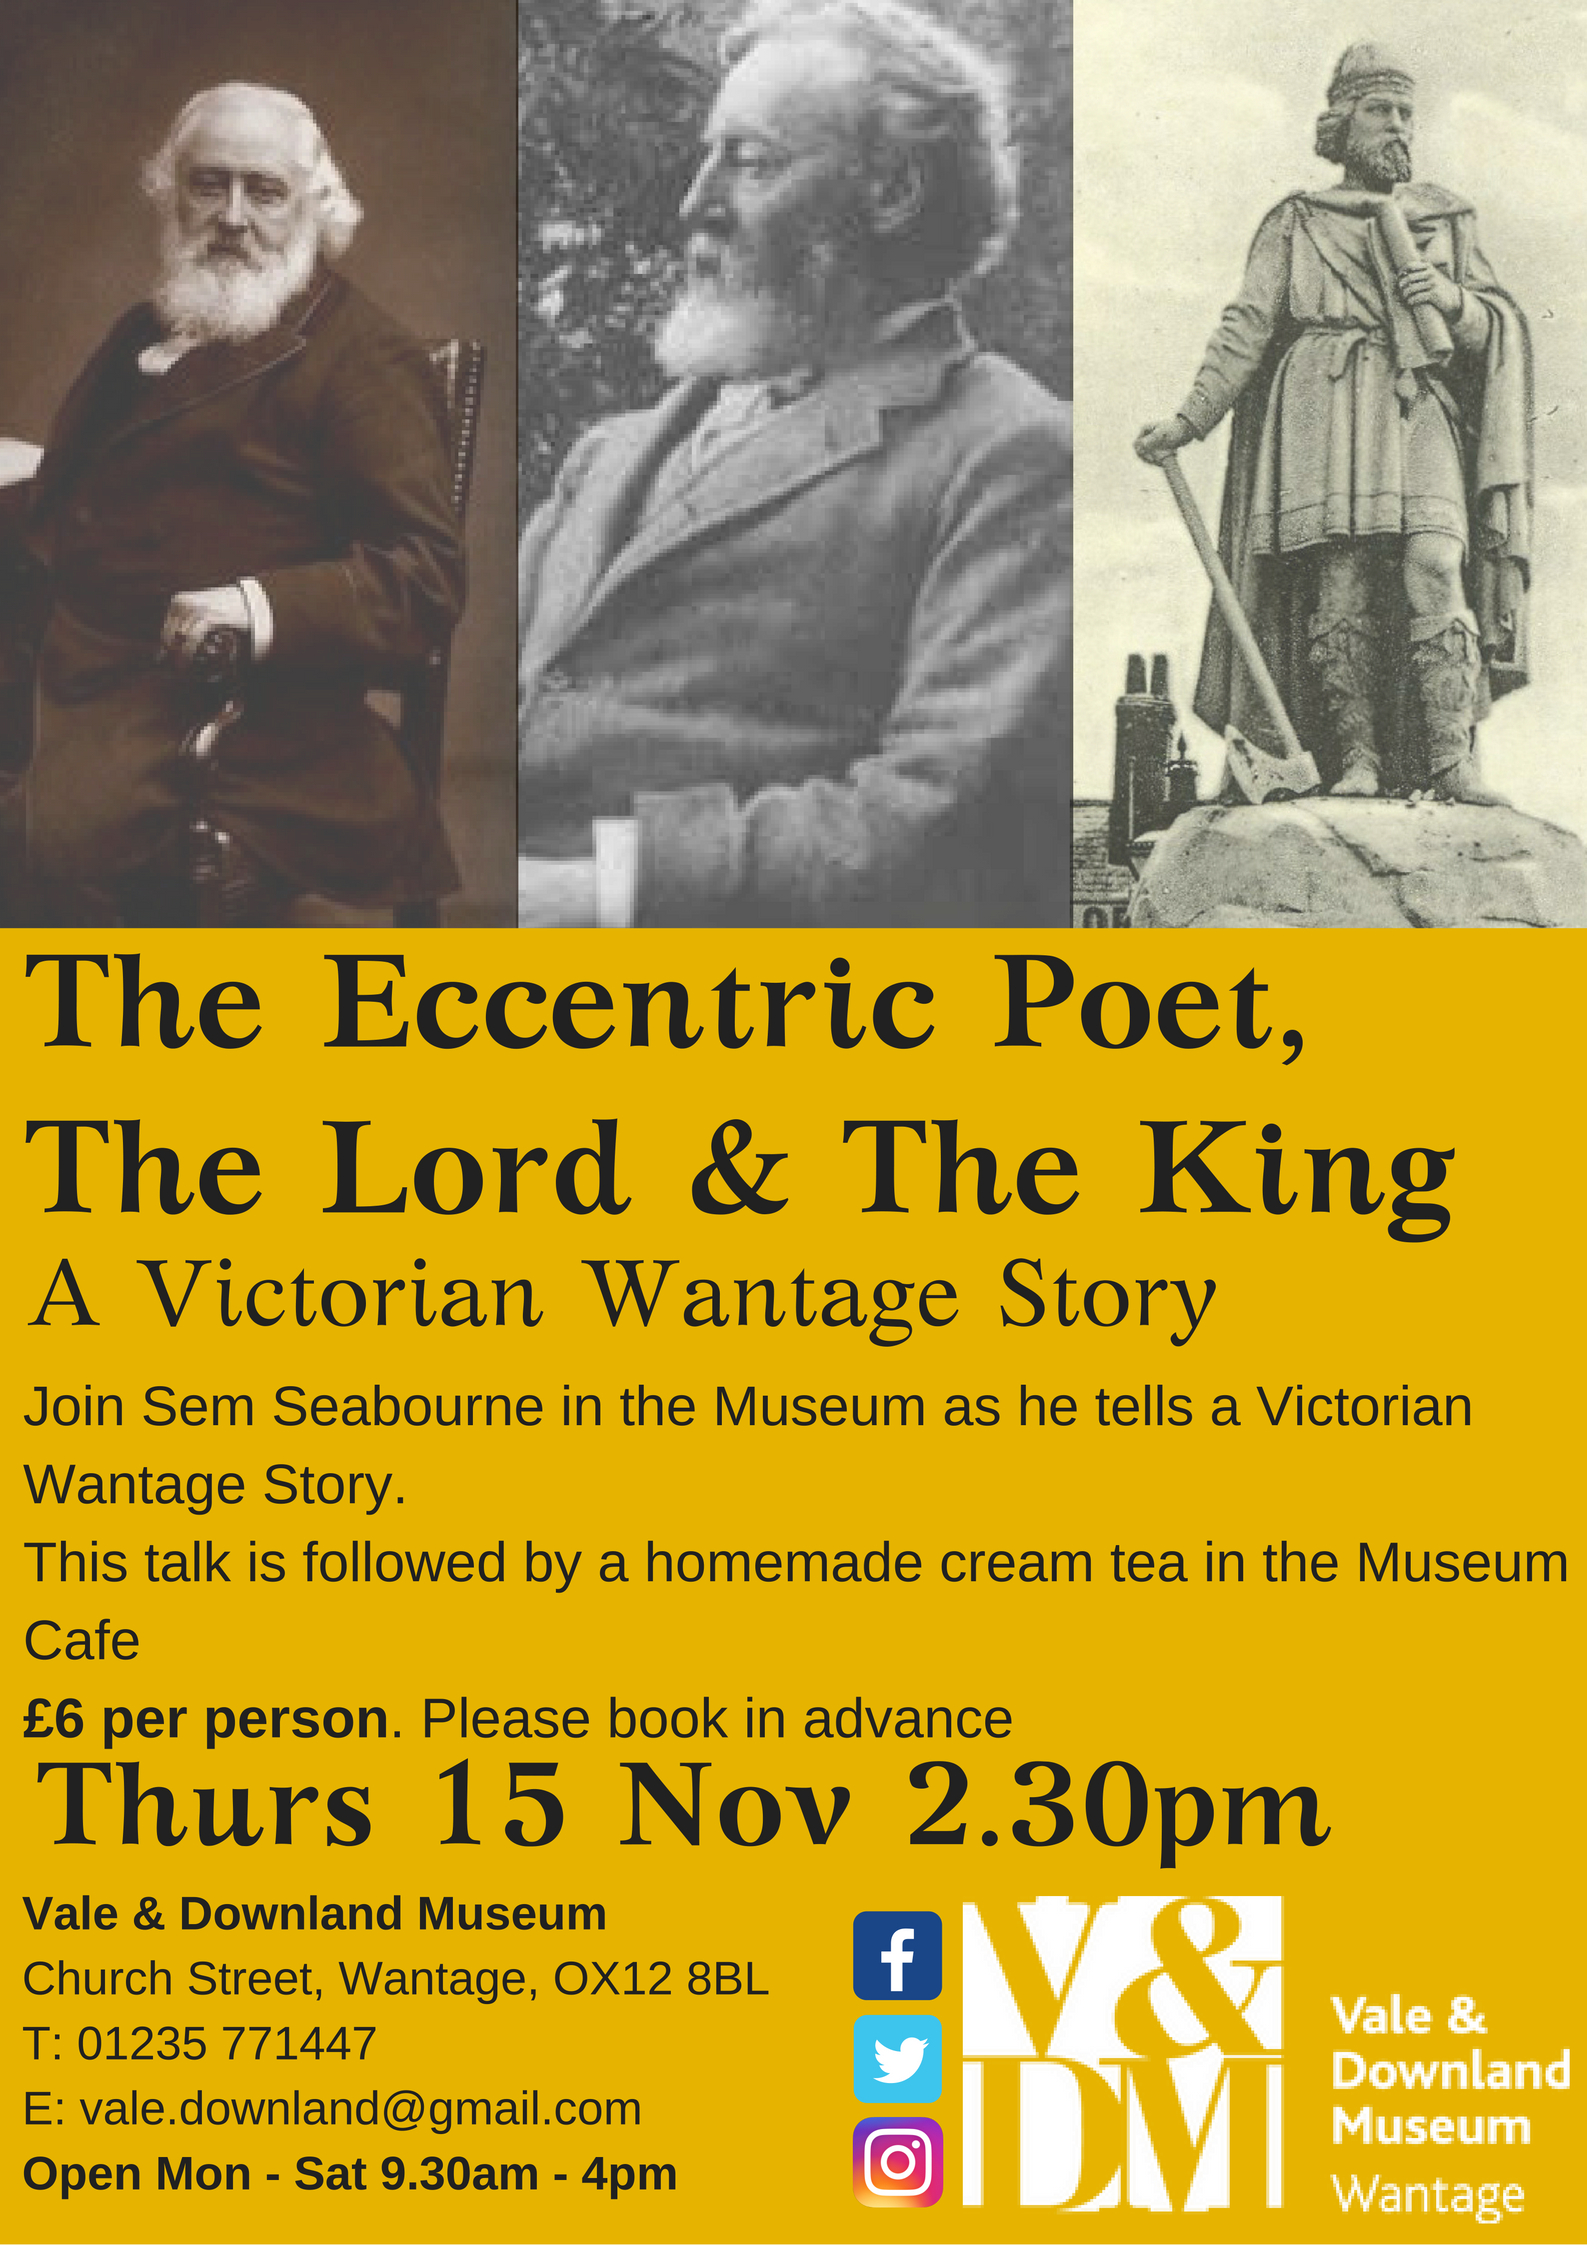 The Eccentric Poet The Lord & The King A Victorian Wantage Story